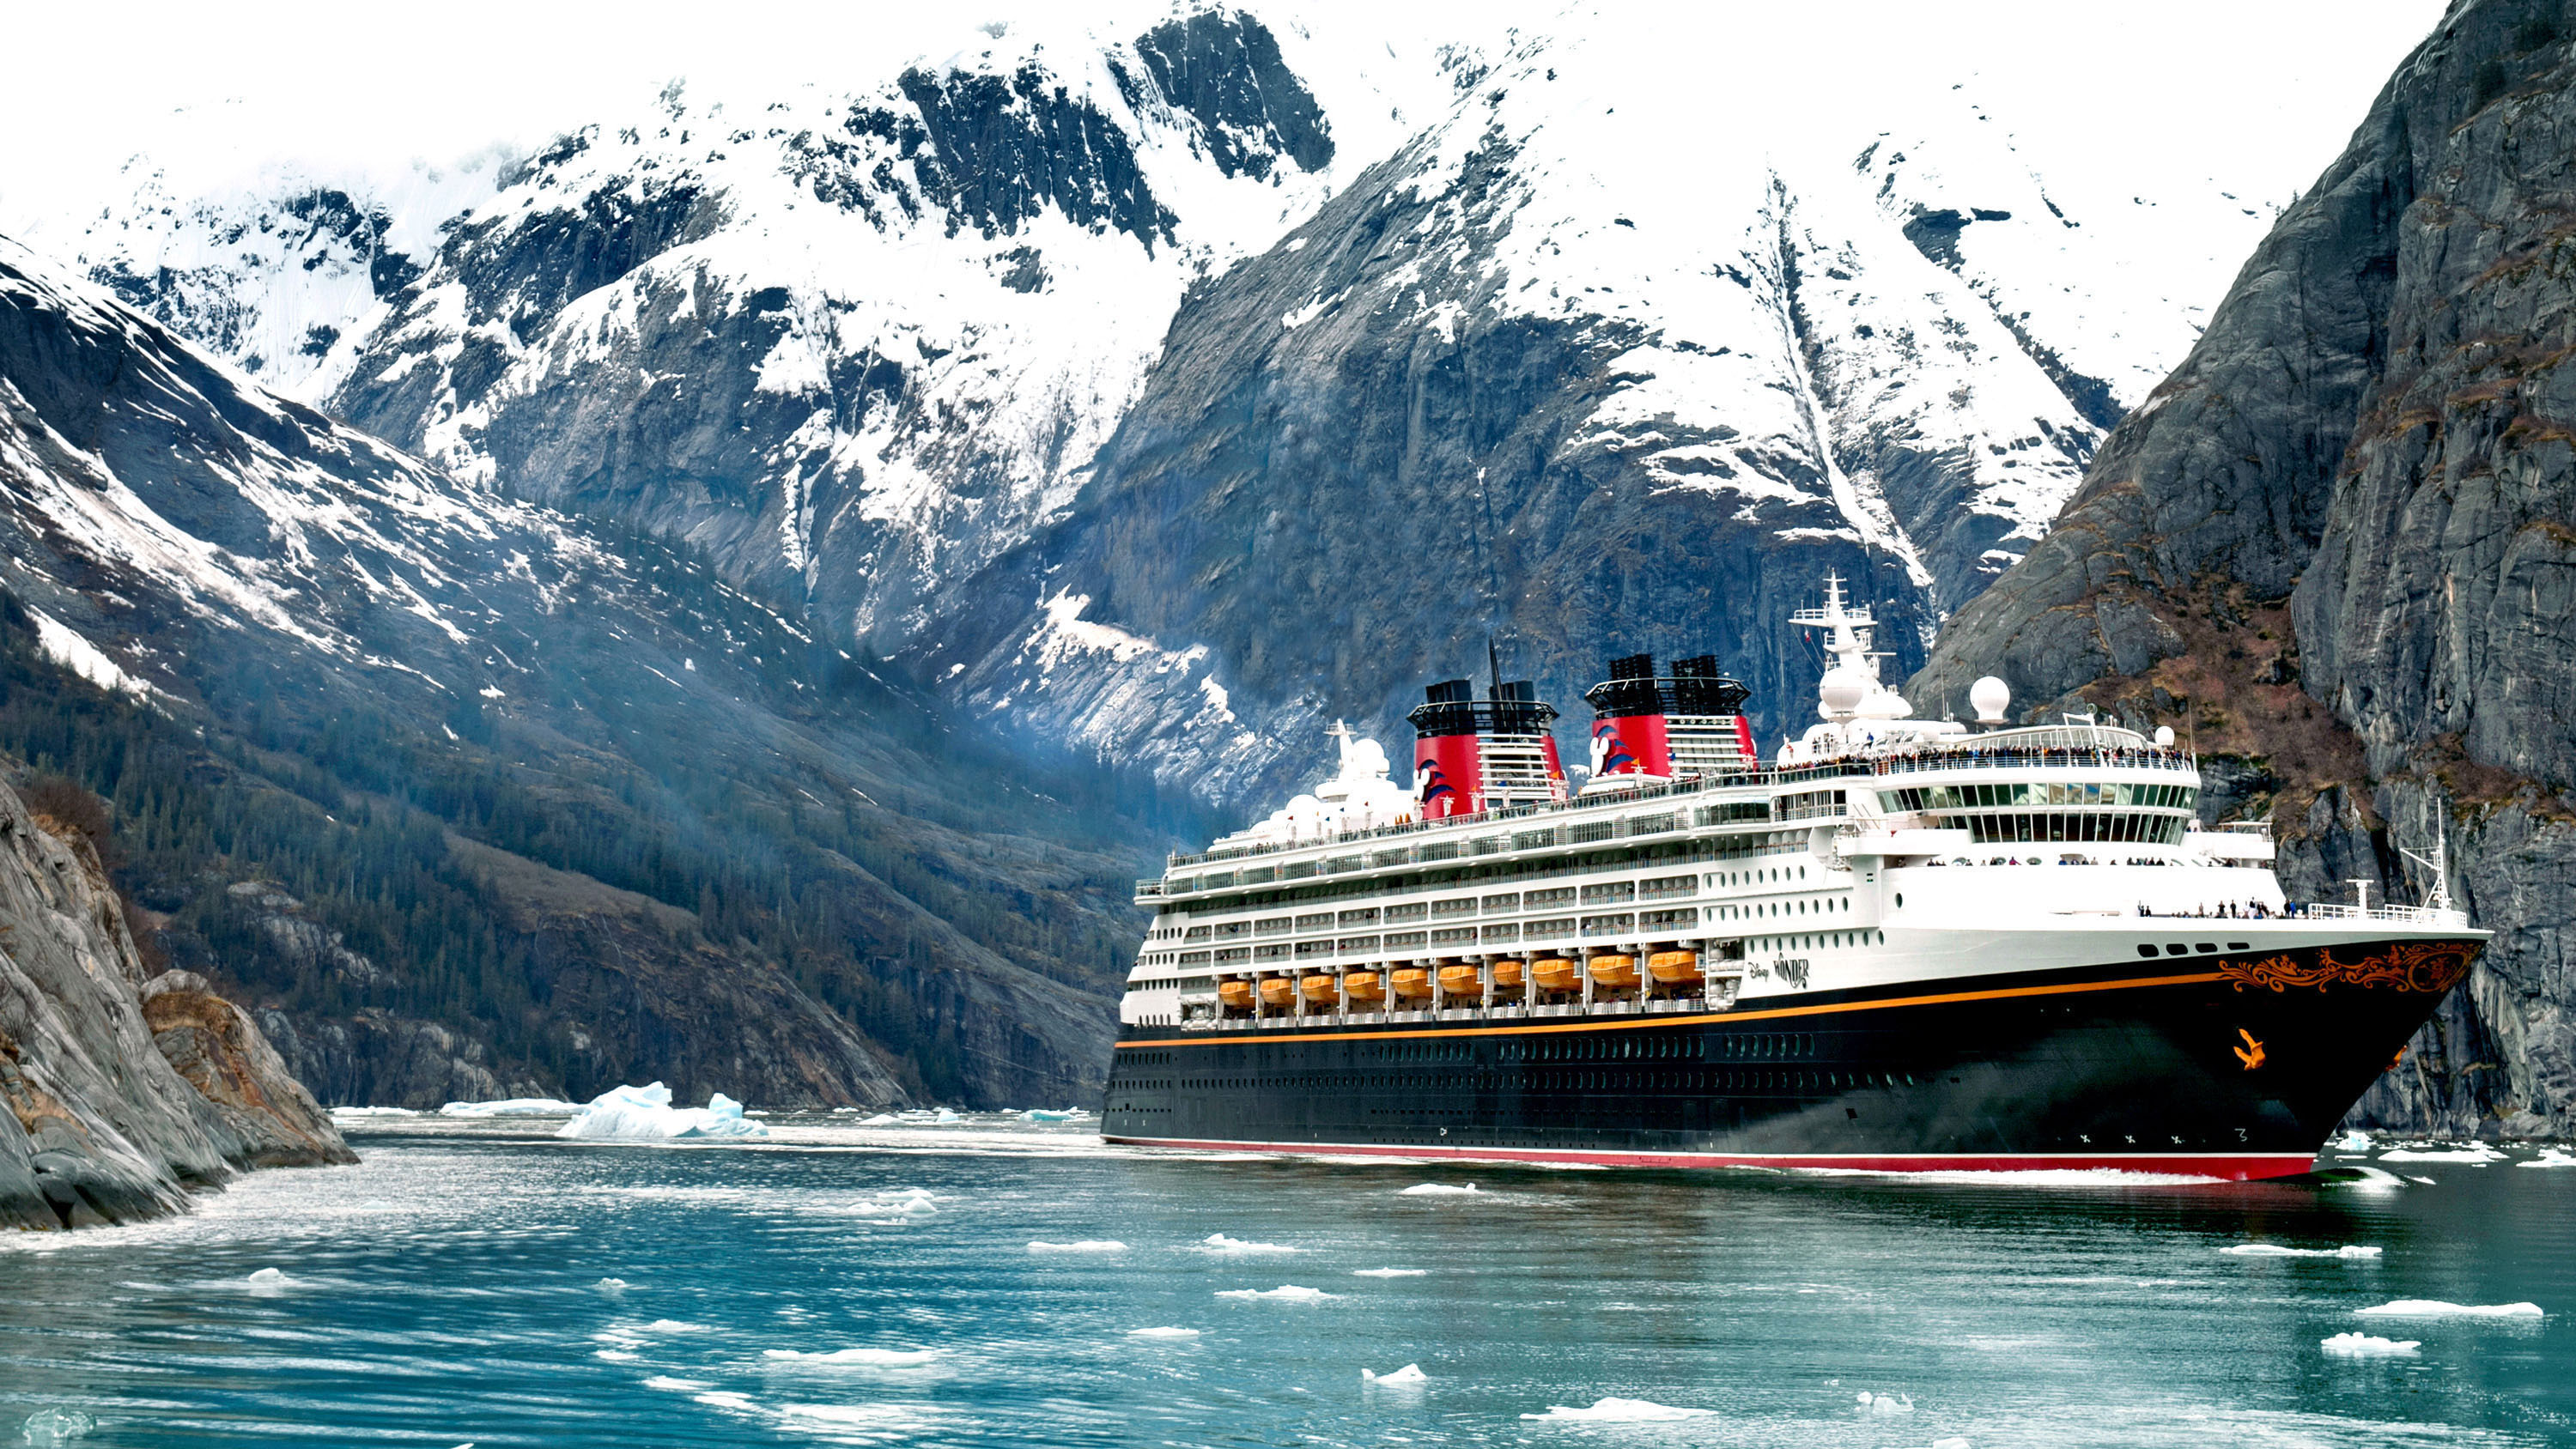 Disney Cruise Line Guests Experience the Wonder of America's Last